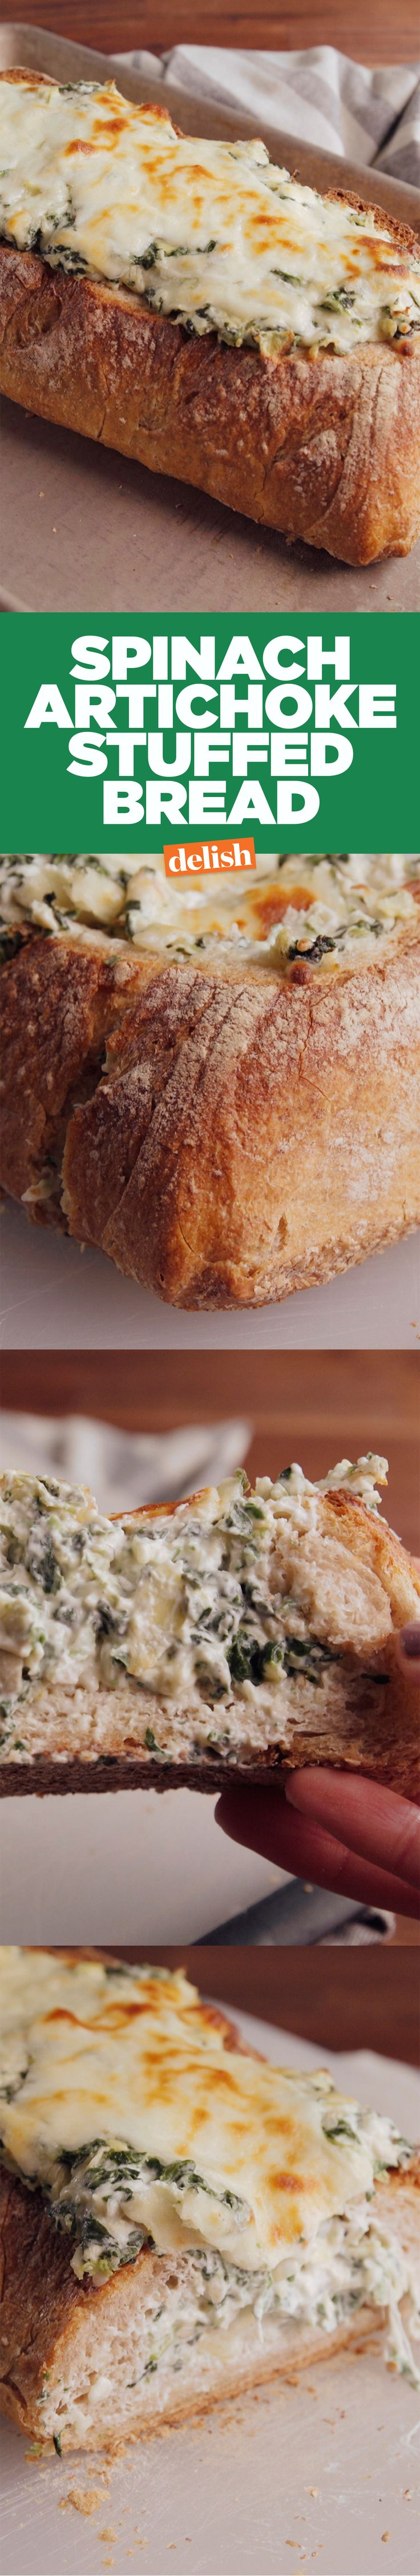 Spinach artichoke stuffed bread will save you from fighting around the dip bowl. Get the recipe on Delish.com.